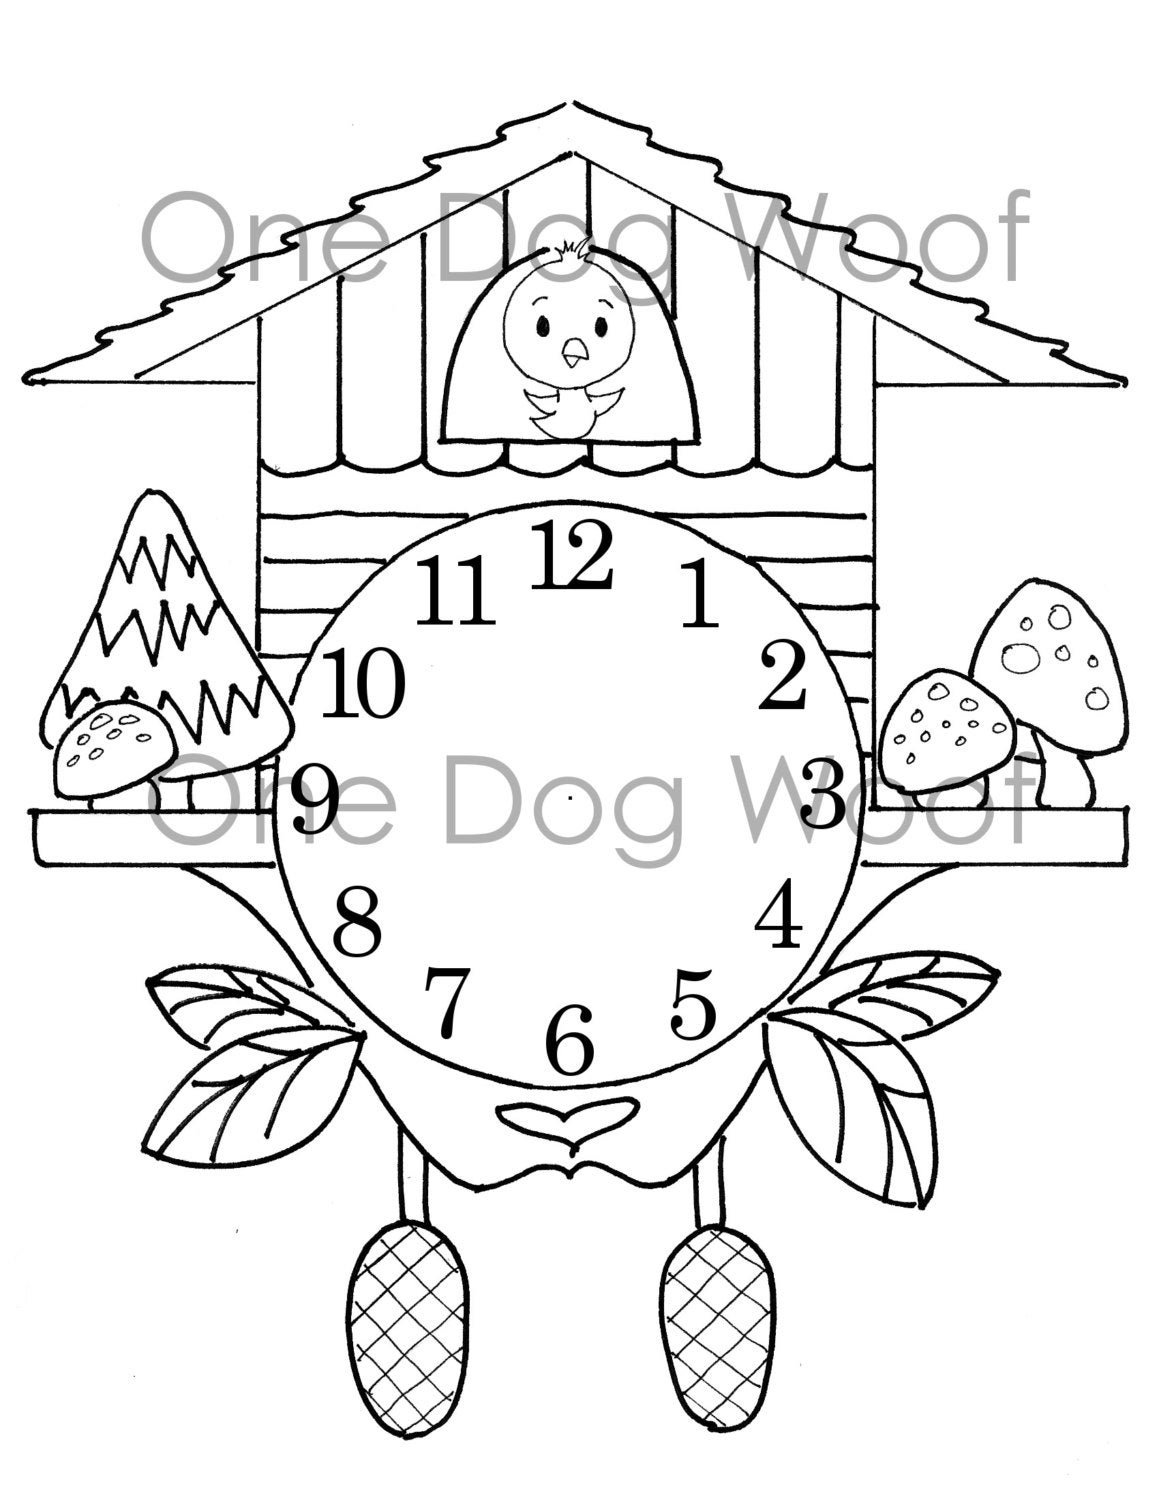 cuckoo clock coloring page create your own cuckoo clock digital print coloring page clock page coloring cuckoo